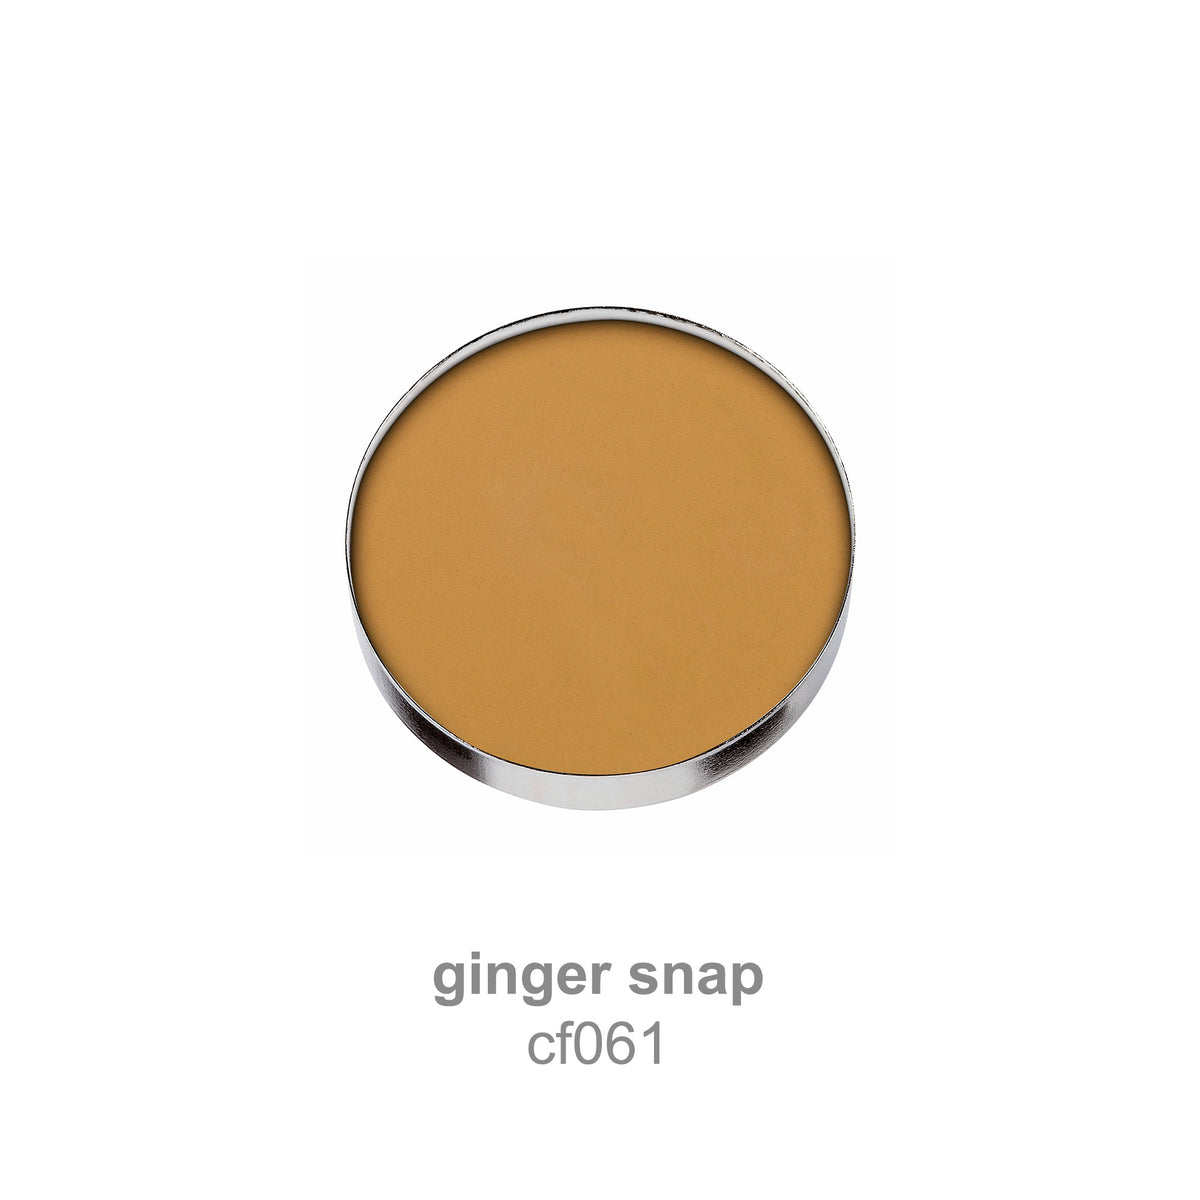 ginger snap yellow cf061